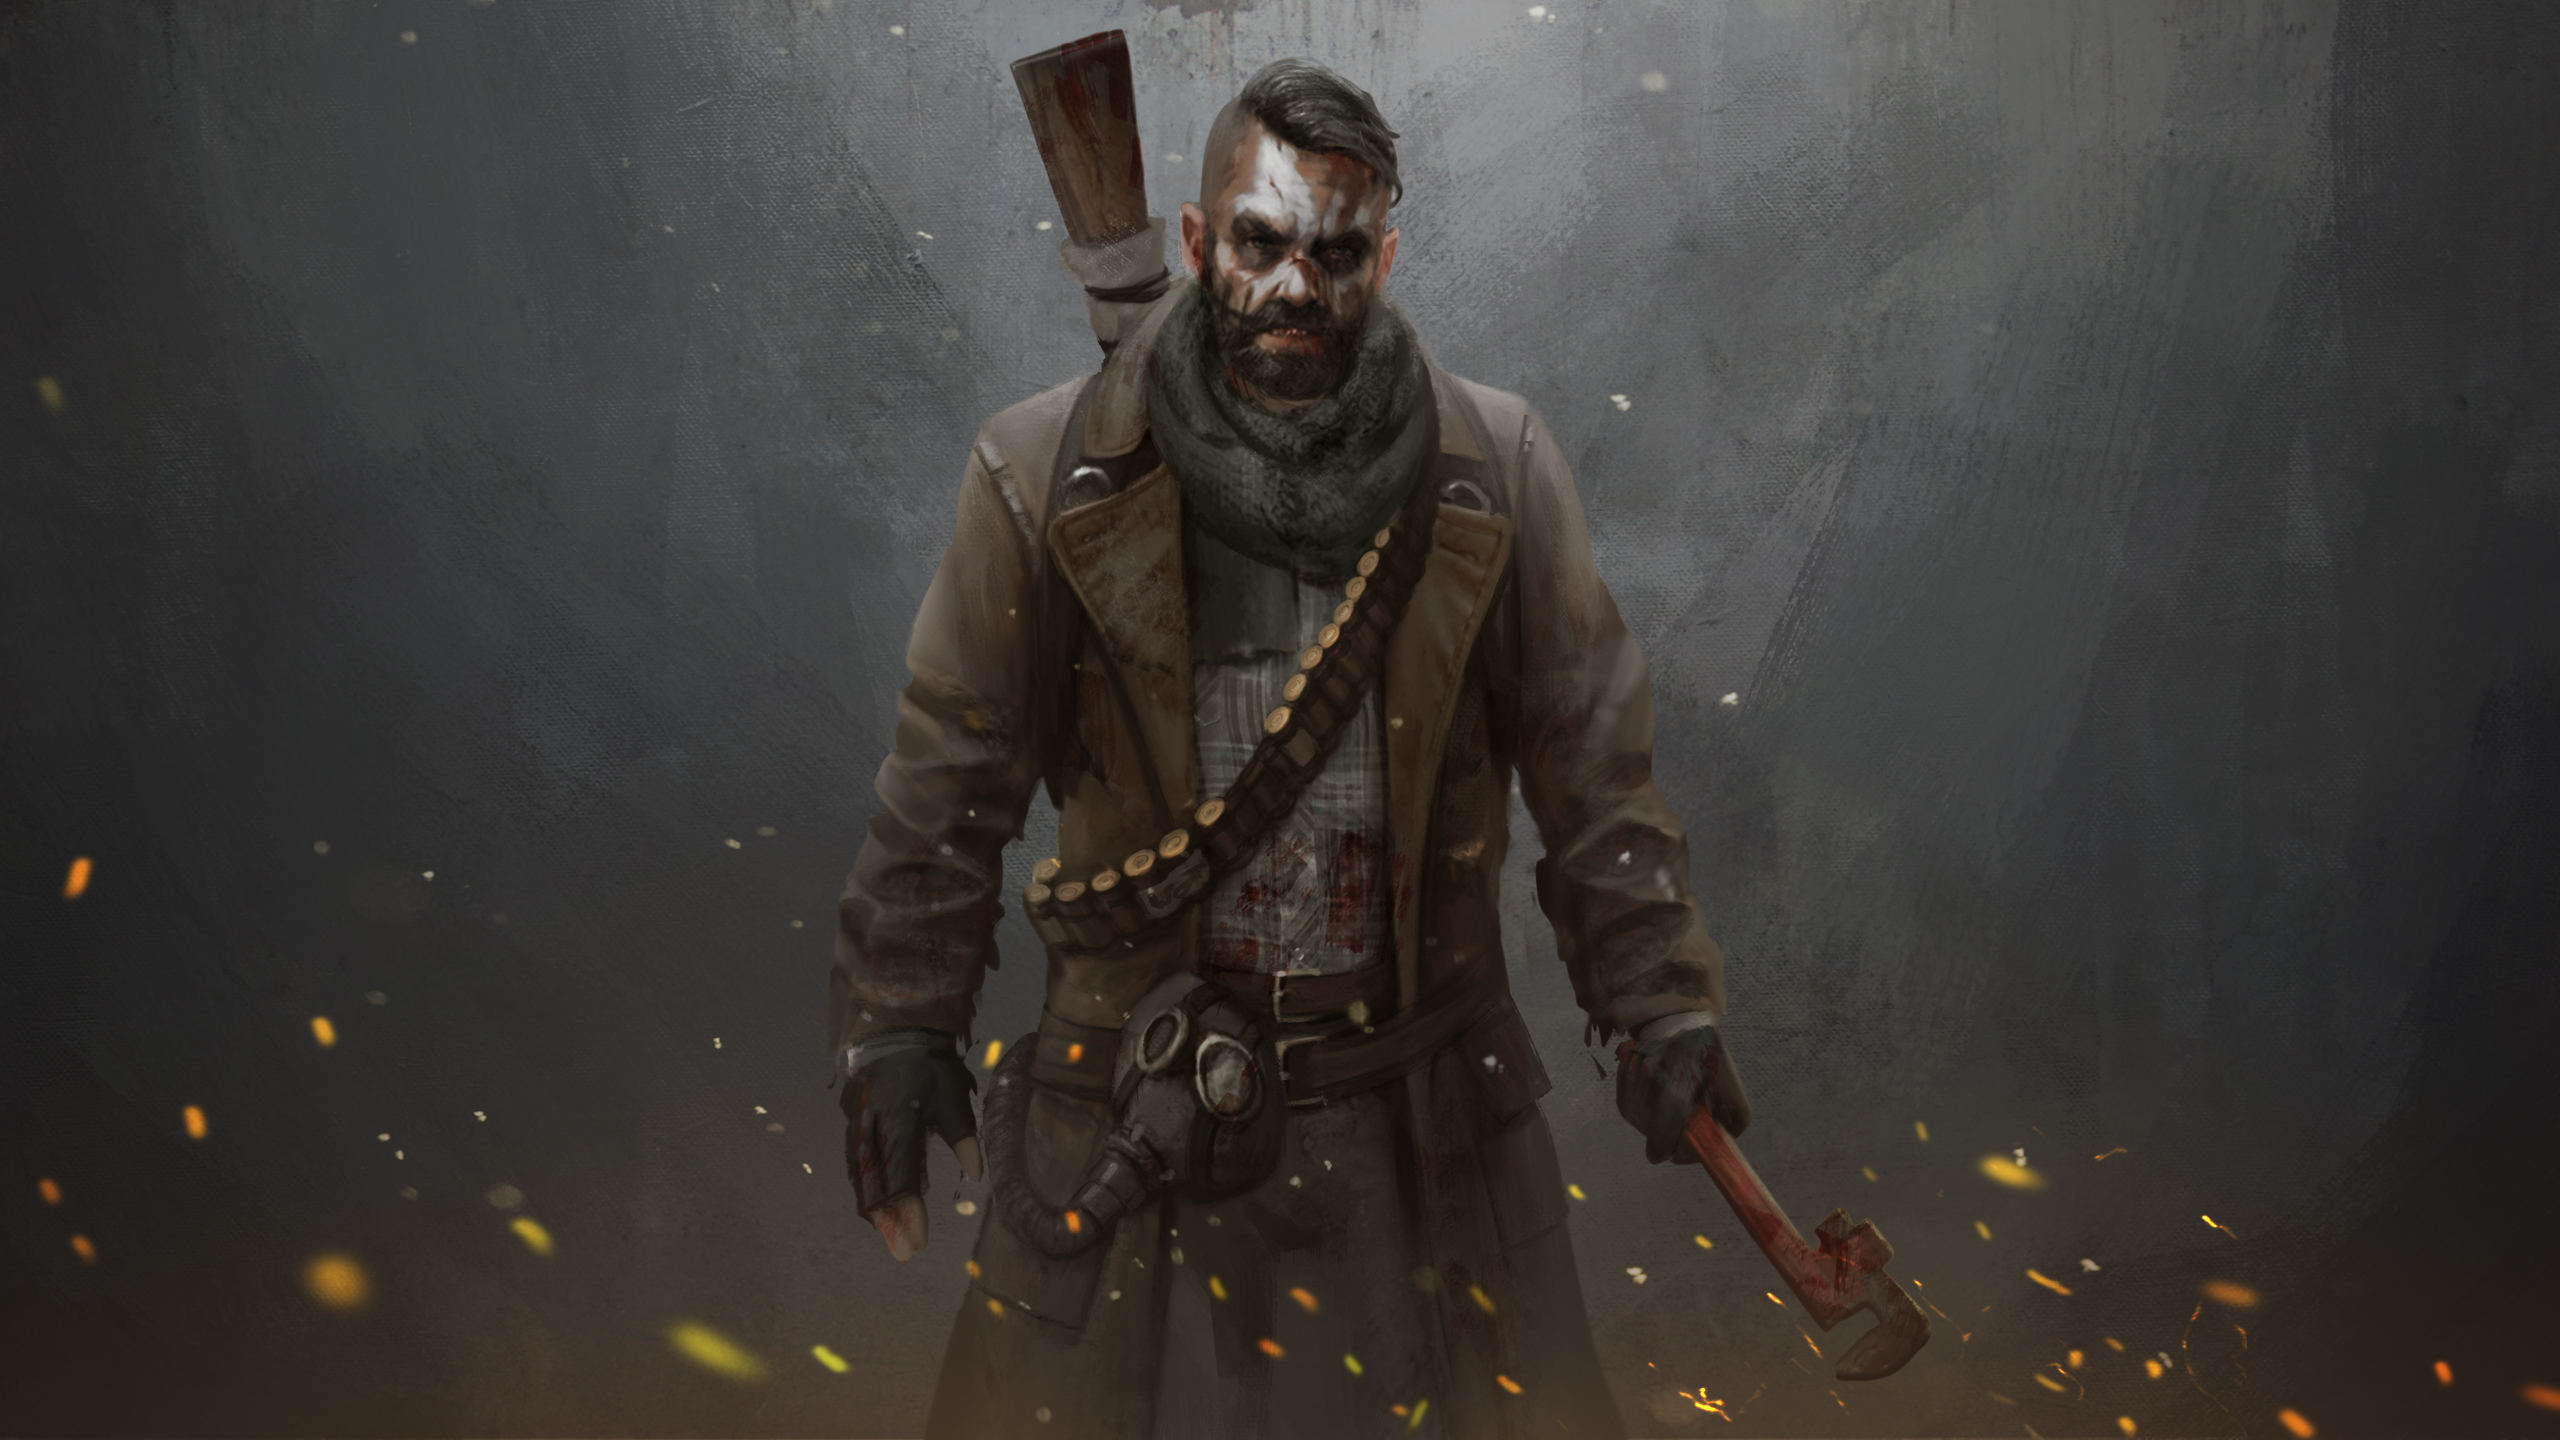 Infected Zombie RPG: Cannibal  (Image: Immersion Studios)